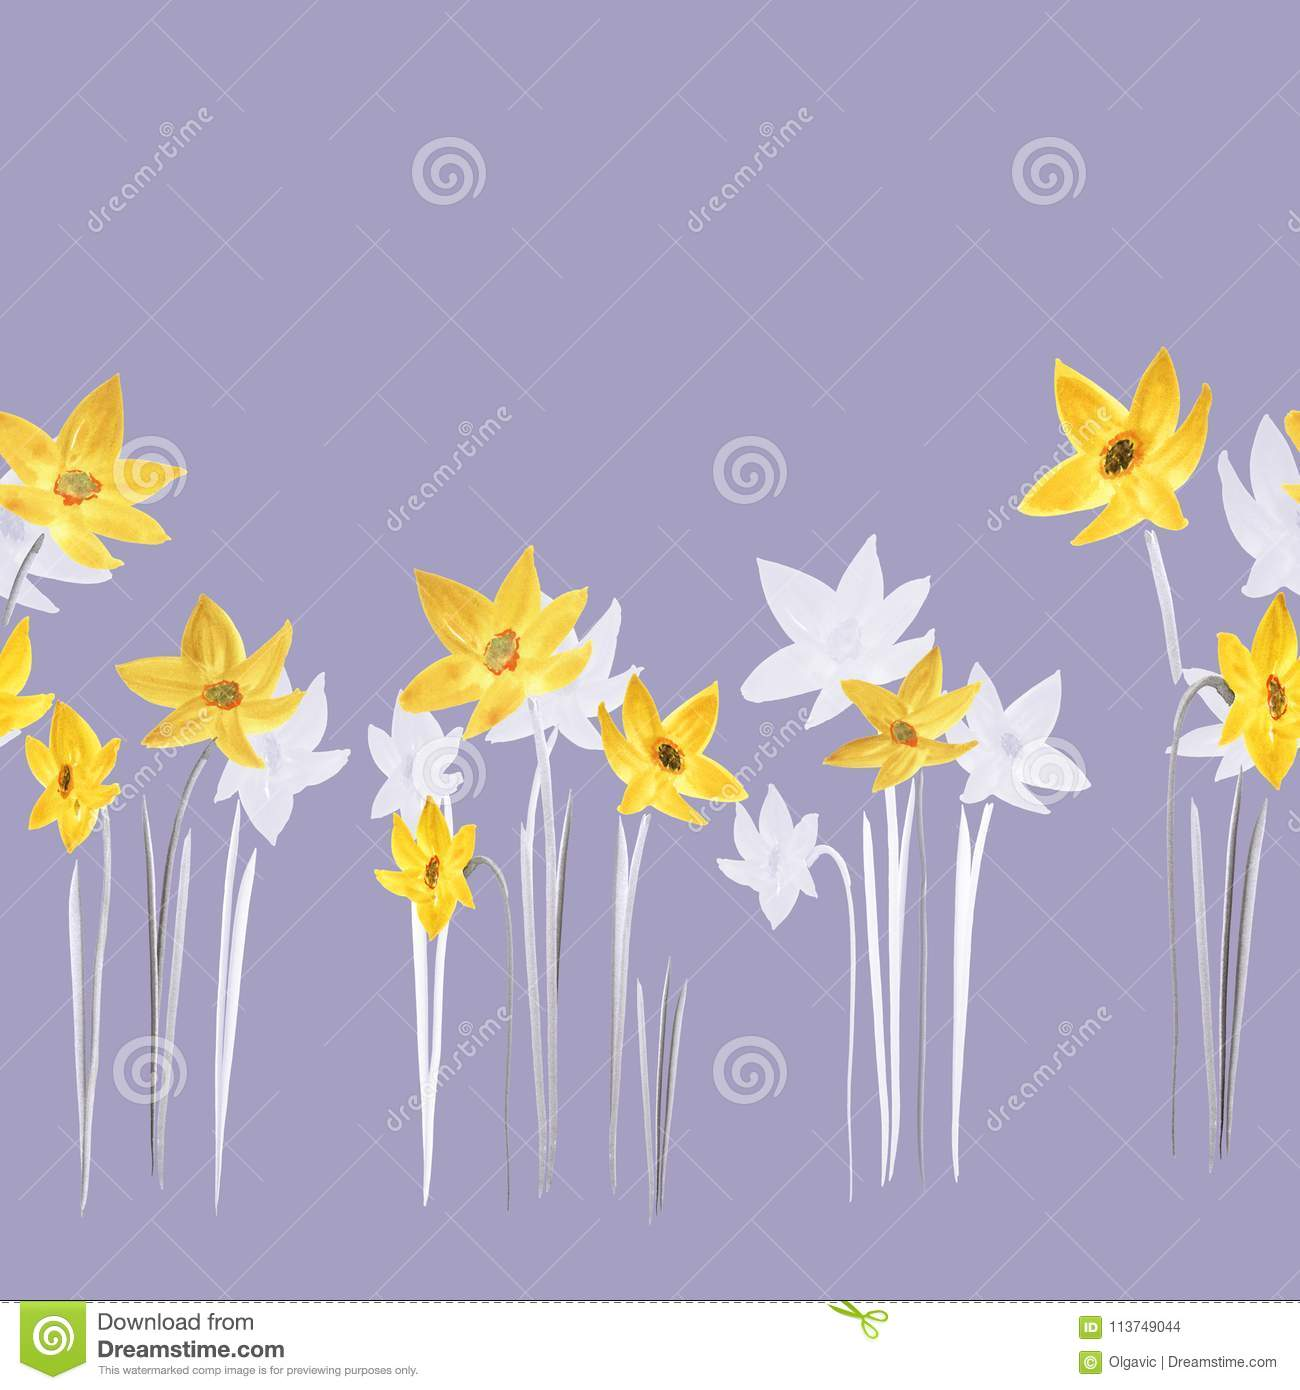 Seamless Pattern Of Spring Yellow And White Flowers Of Daffodils On